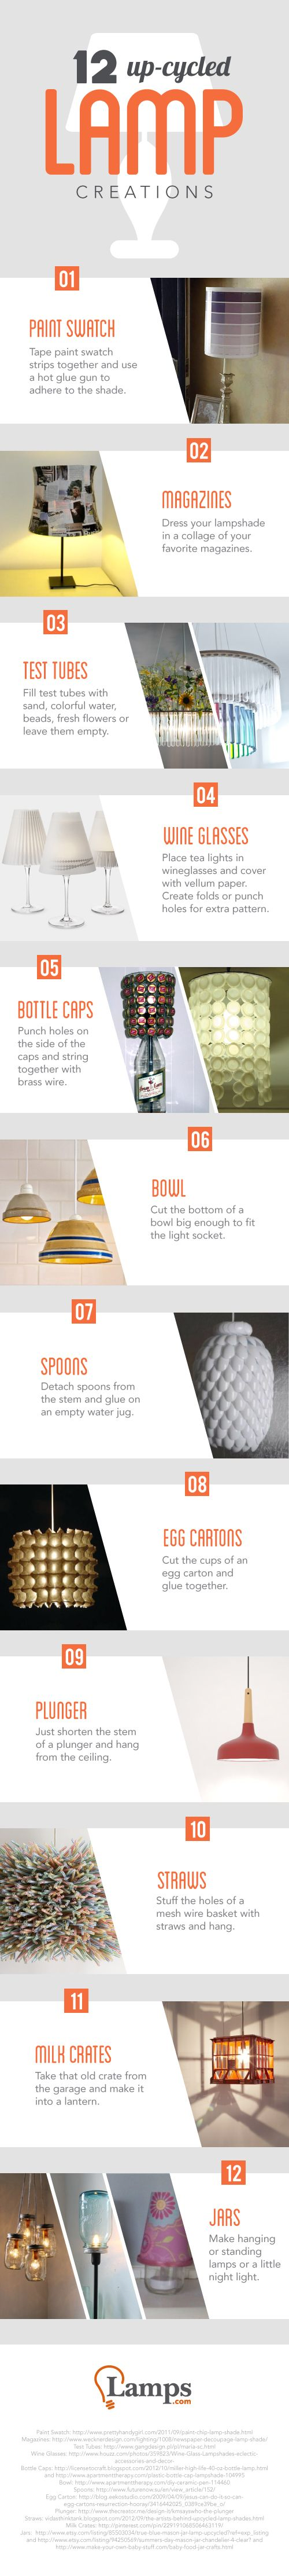 12-upcycled-lamp-creations